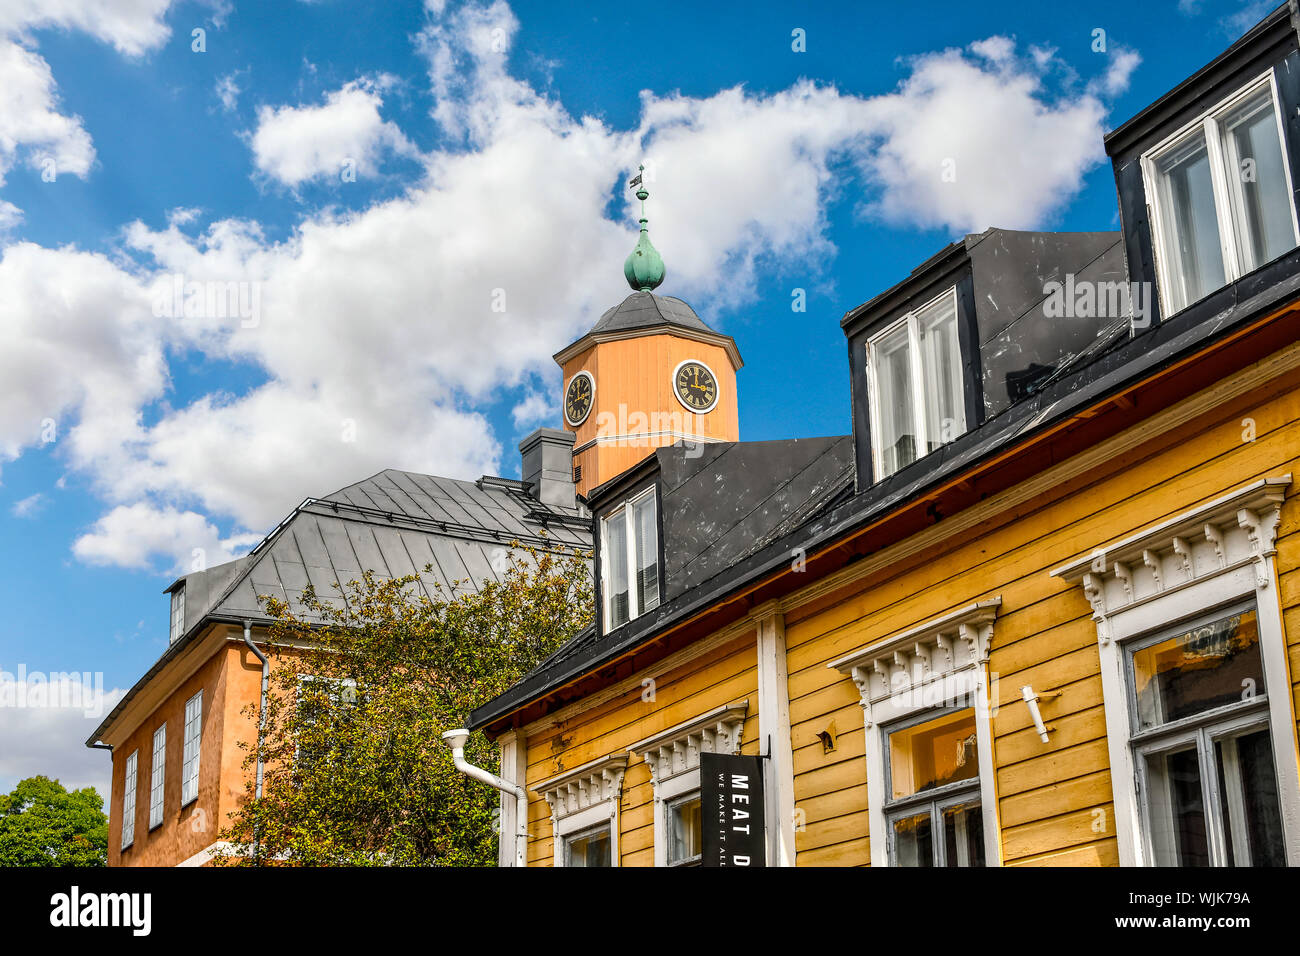 Porvoo, Finland - September 9 2018: The clock tower of the medieval Holmin Talo, the museum located on the main square of Porvoo, Finland Stock Photo